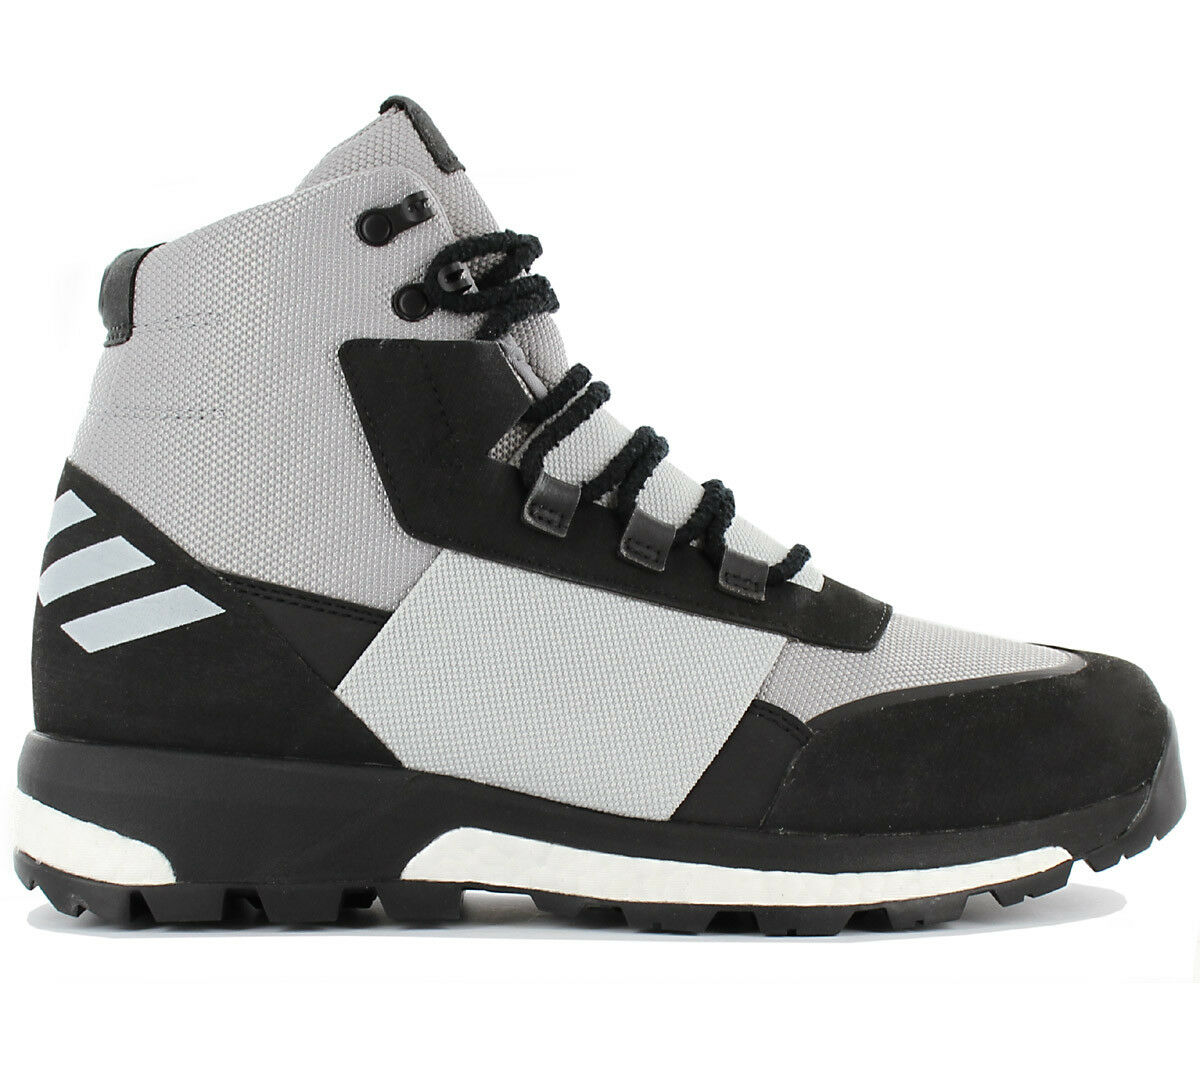 Adidas Ado Ultimate Stiefel Stiefel Stiefel Day One Edition BOOST Herren Outdoor Stiefel Schuhe CQ2609  | Sale